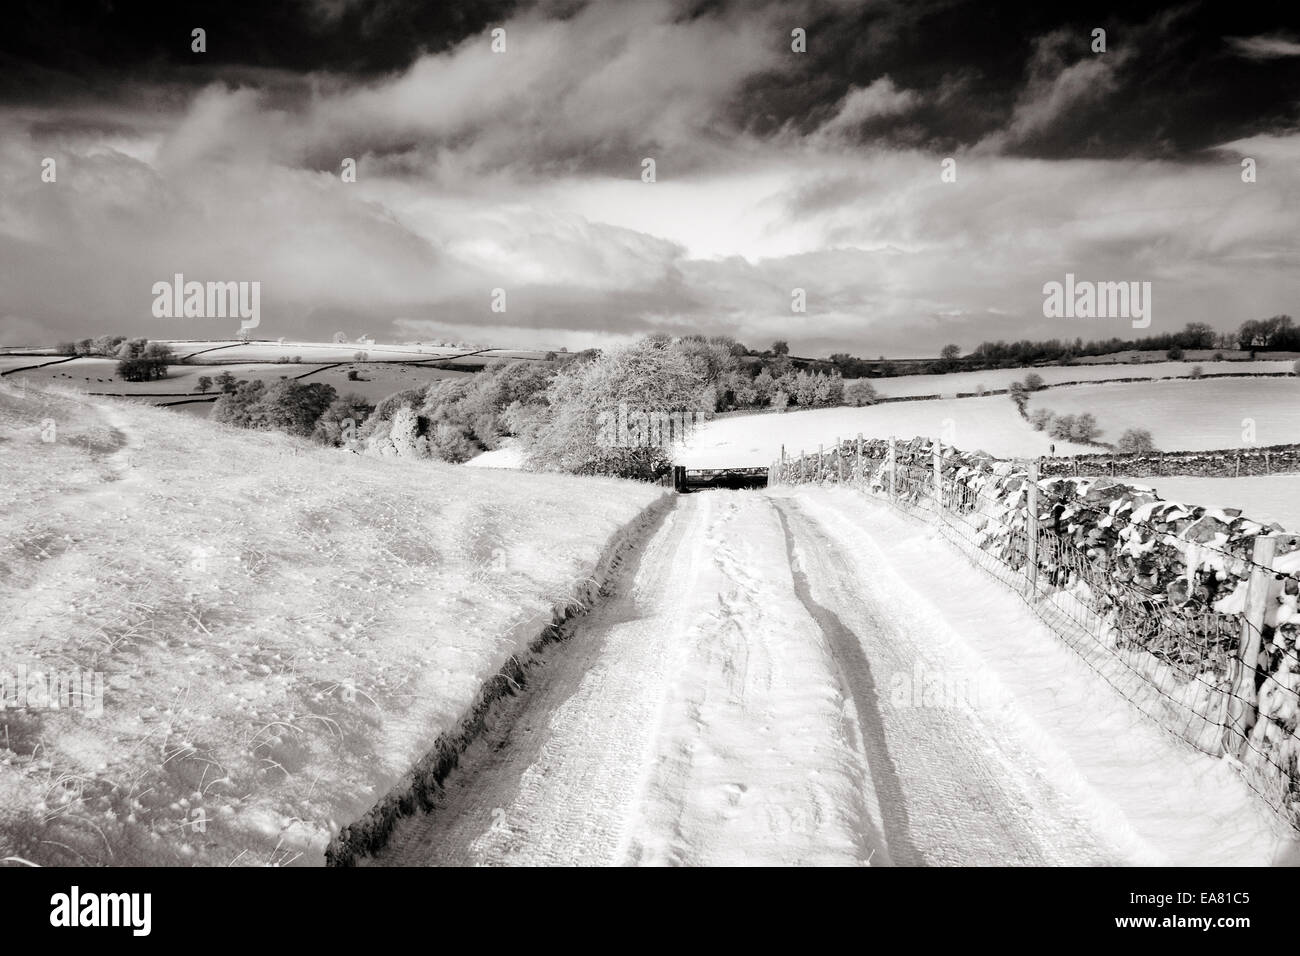 Country track with views across valley to distant hills near brassington in the Peak District Derbyshire UK winter. - Stock Image